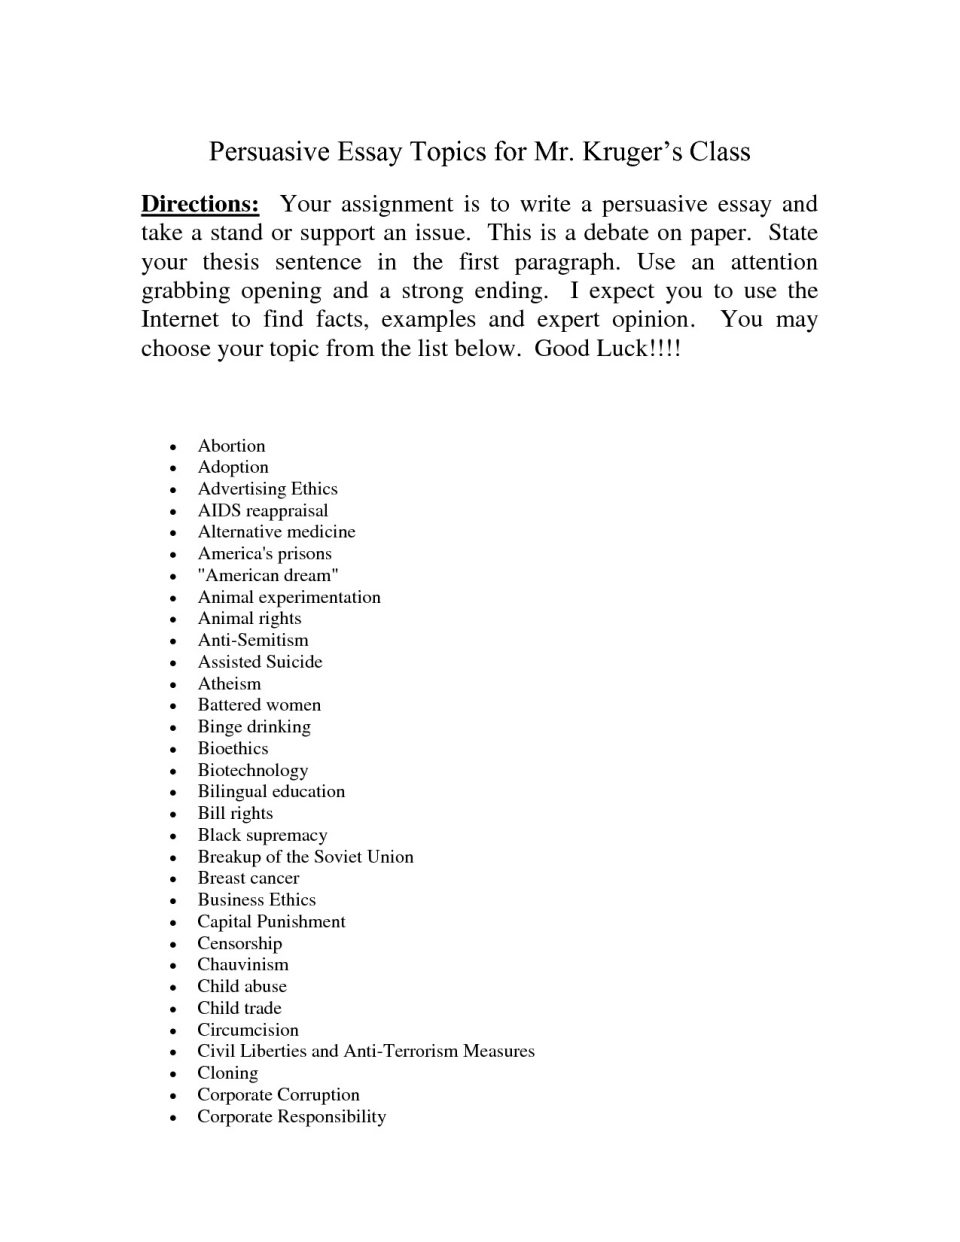 008 Research Paper Topics For Business Topic Essay Barca Fontanacountryinn Within Good Persuasive Narrative To Write Abo Easy About Personal Descriptive Unique Information Systems Students Full